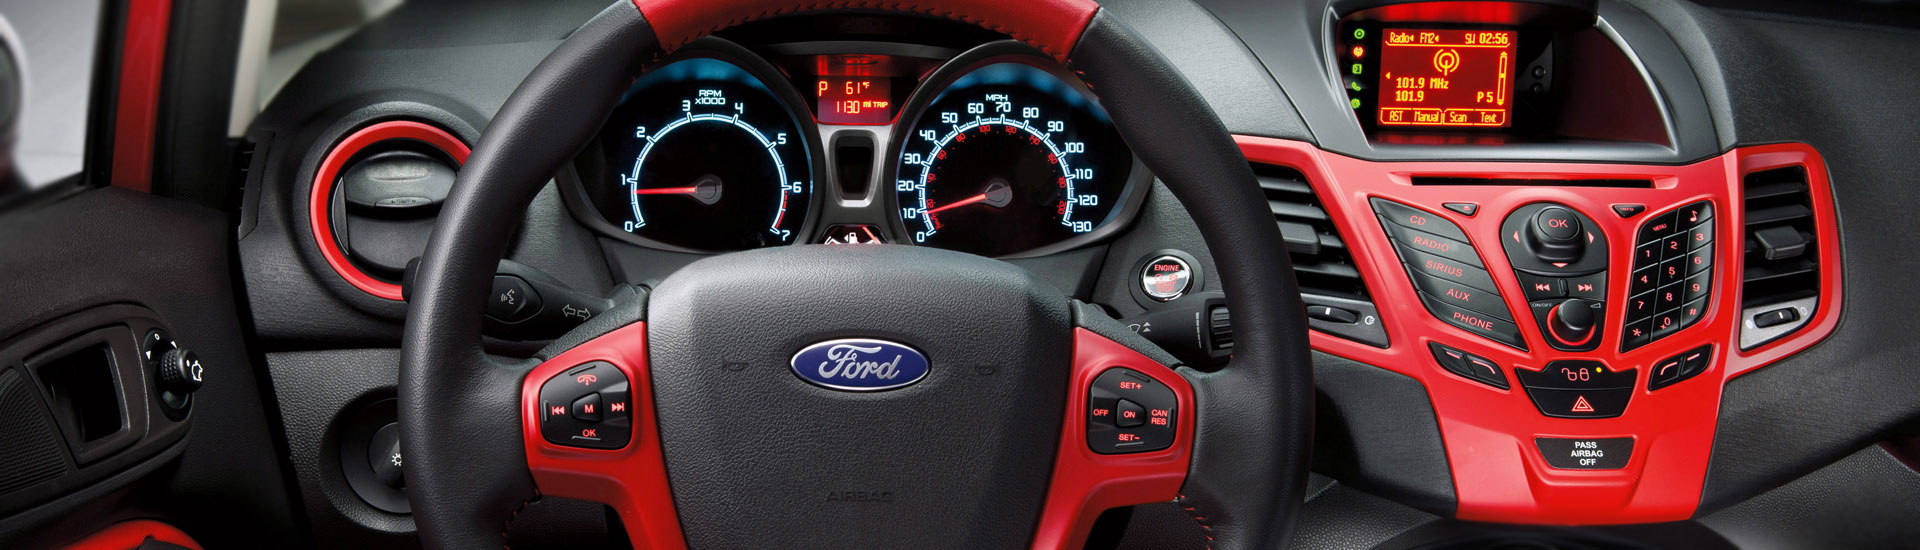 1995 Ford F-150 Custom Dash Kits